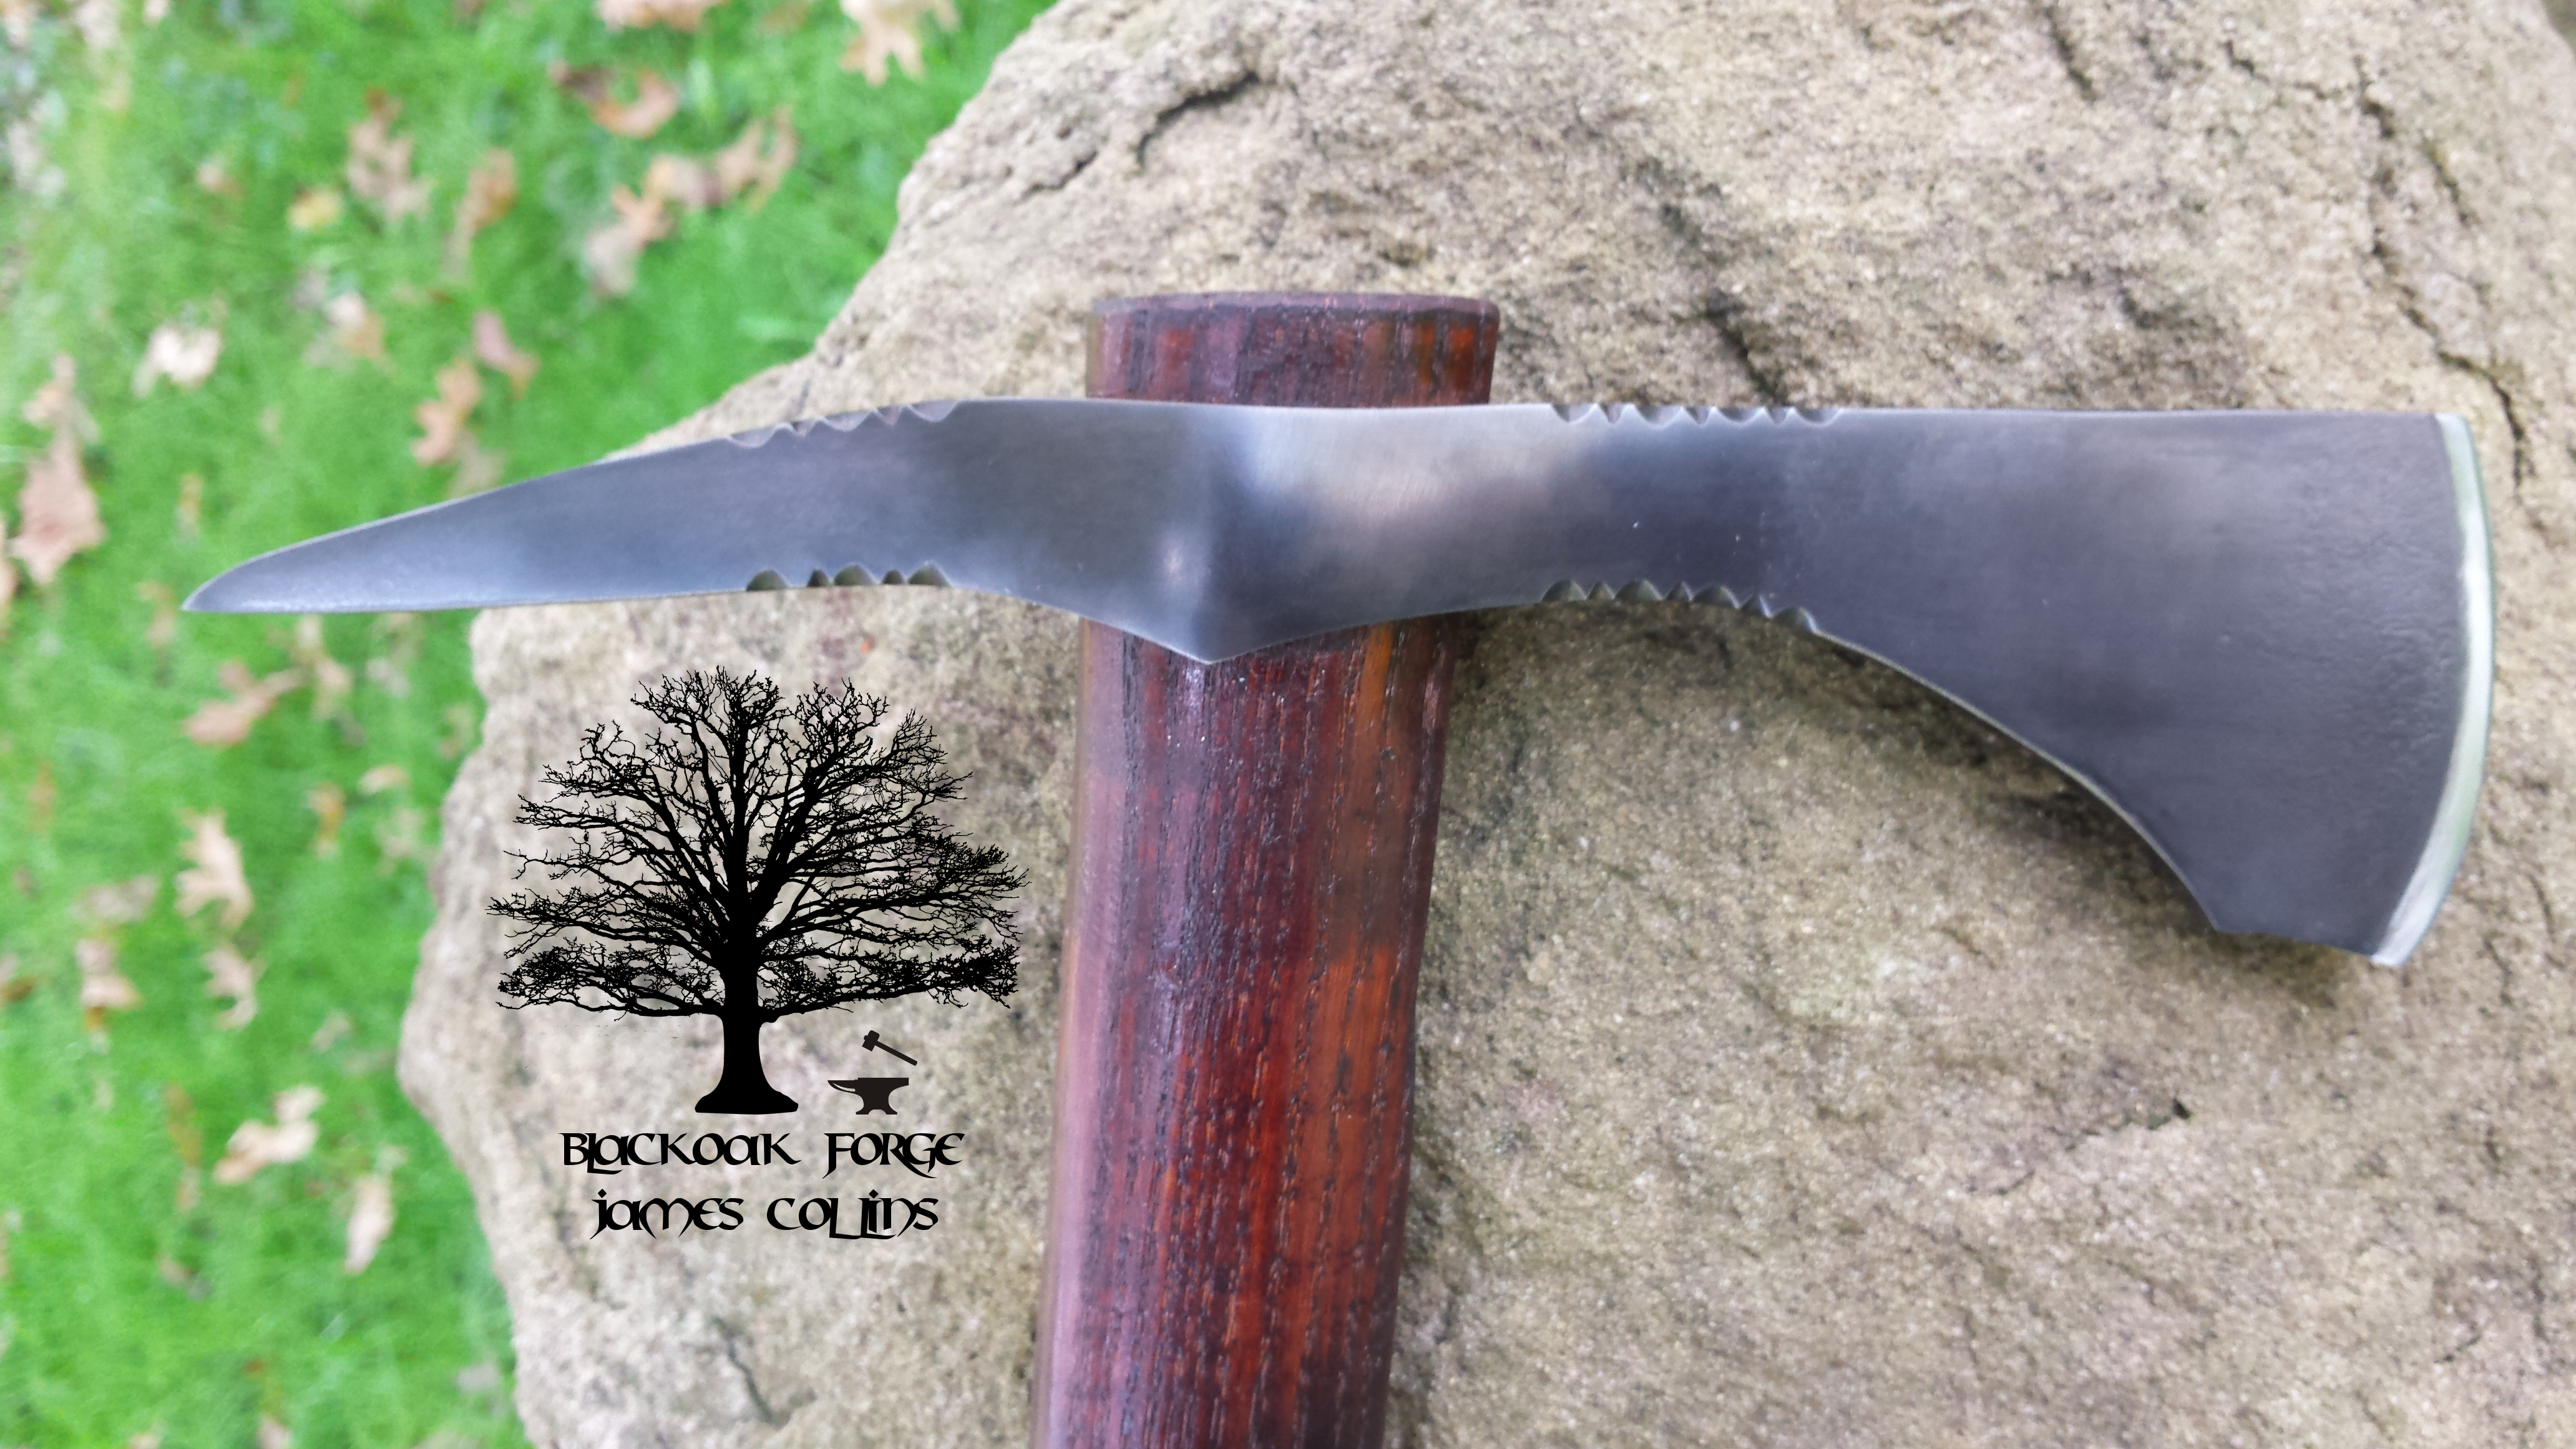 Spike Tomahawk by James Collins Blackoak Forge